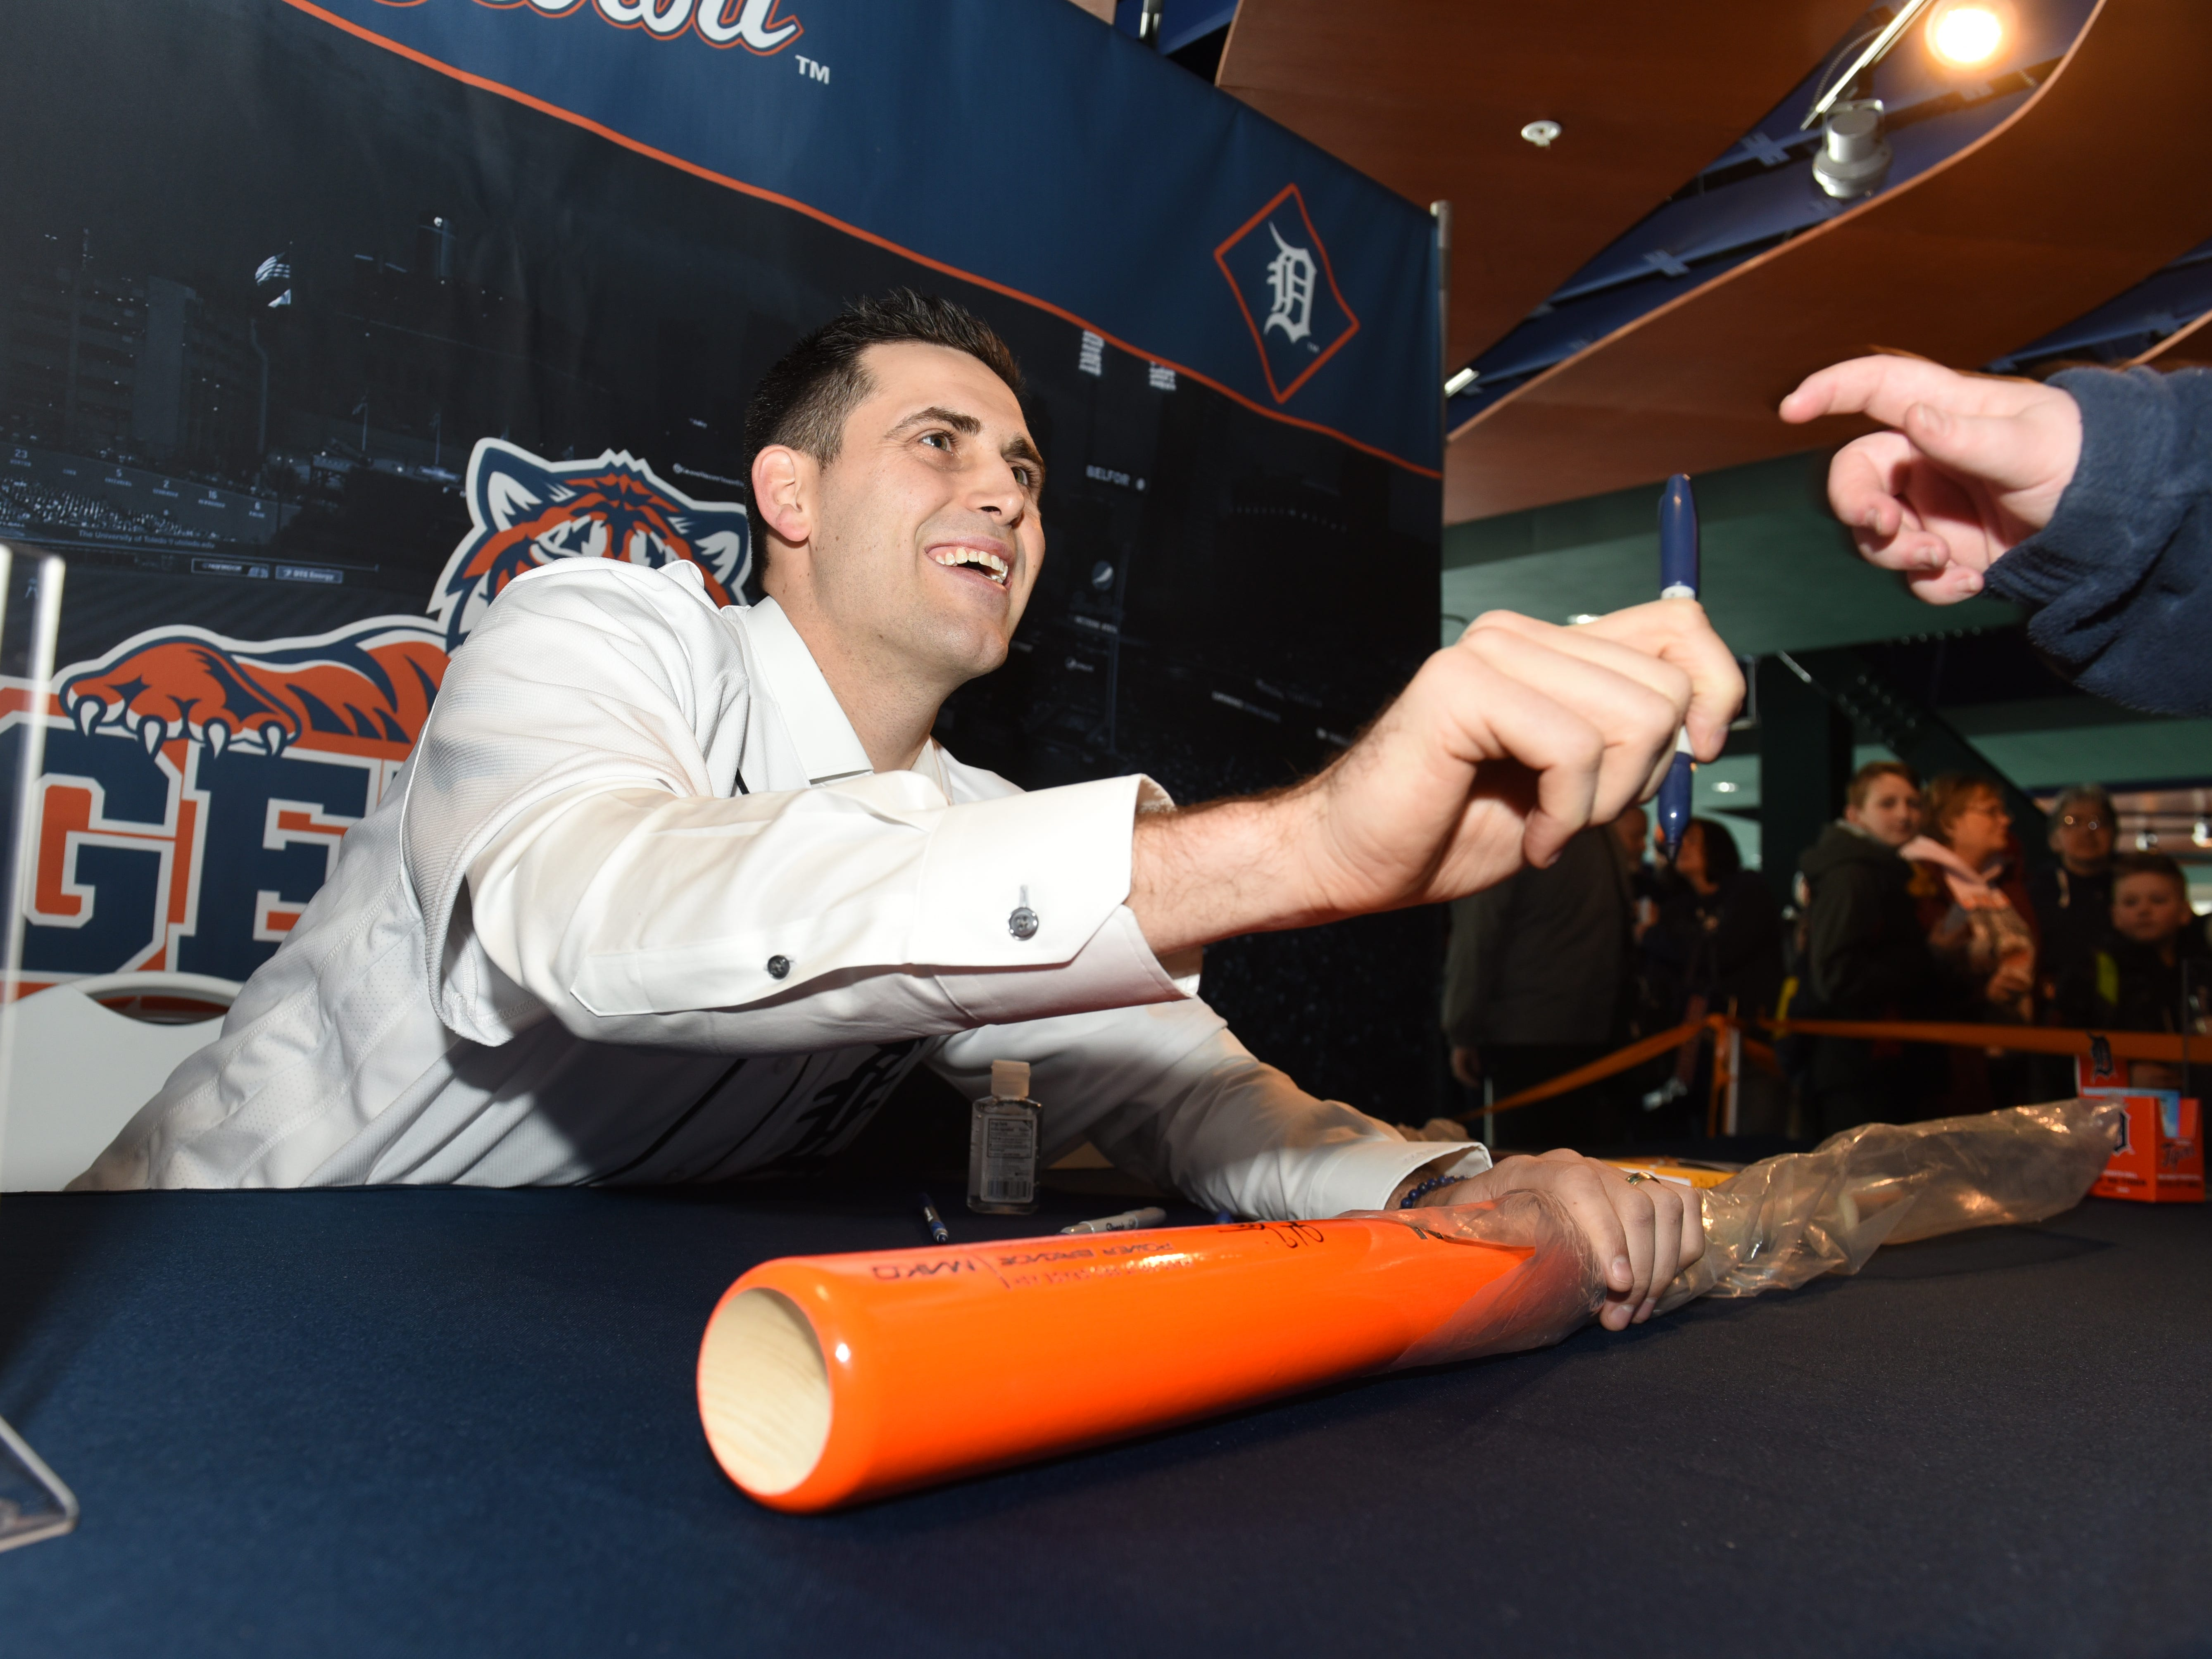 Detroit Tigers pitcher Mathew Boyd signs autographs for fans at Comerica Park for TigerFest on Saturday, January 26, 2019.